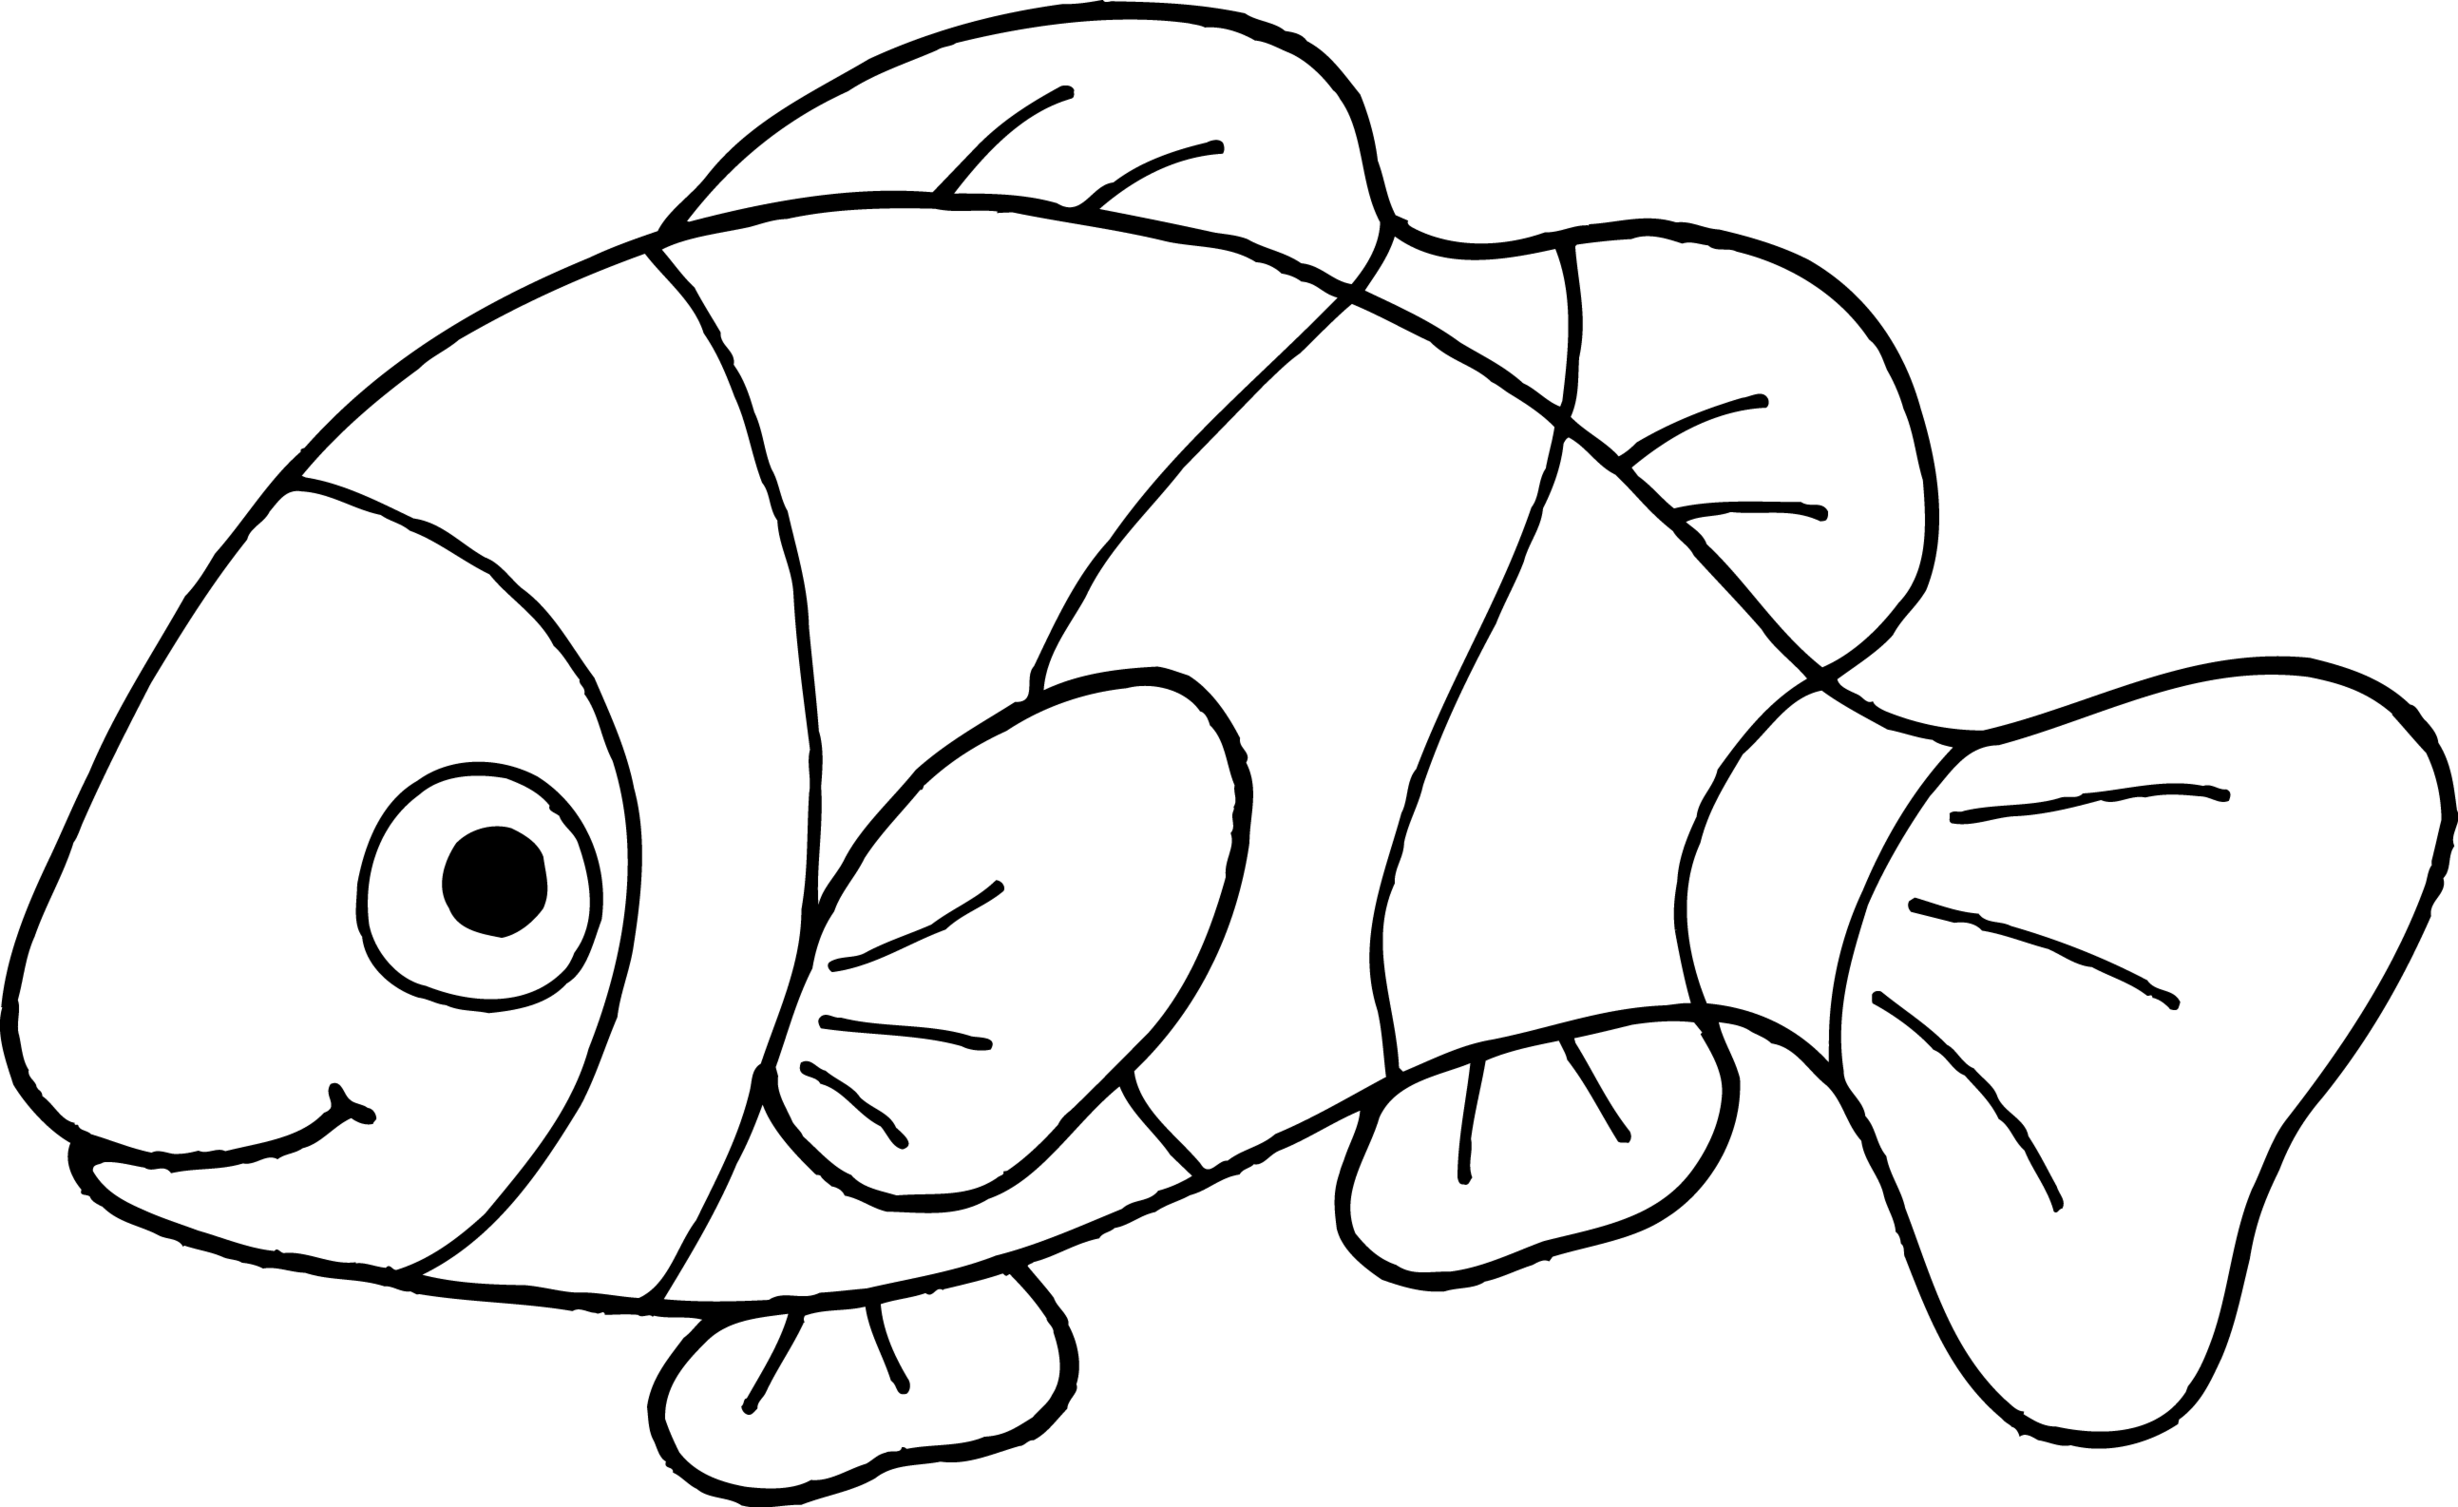 fish black and white clipart 3